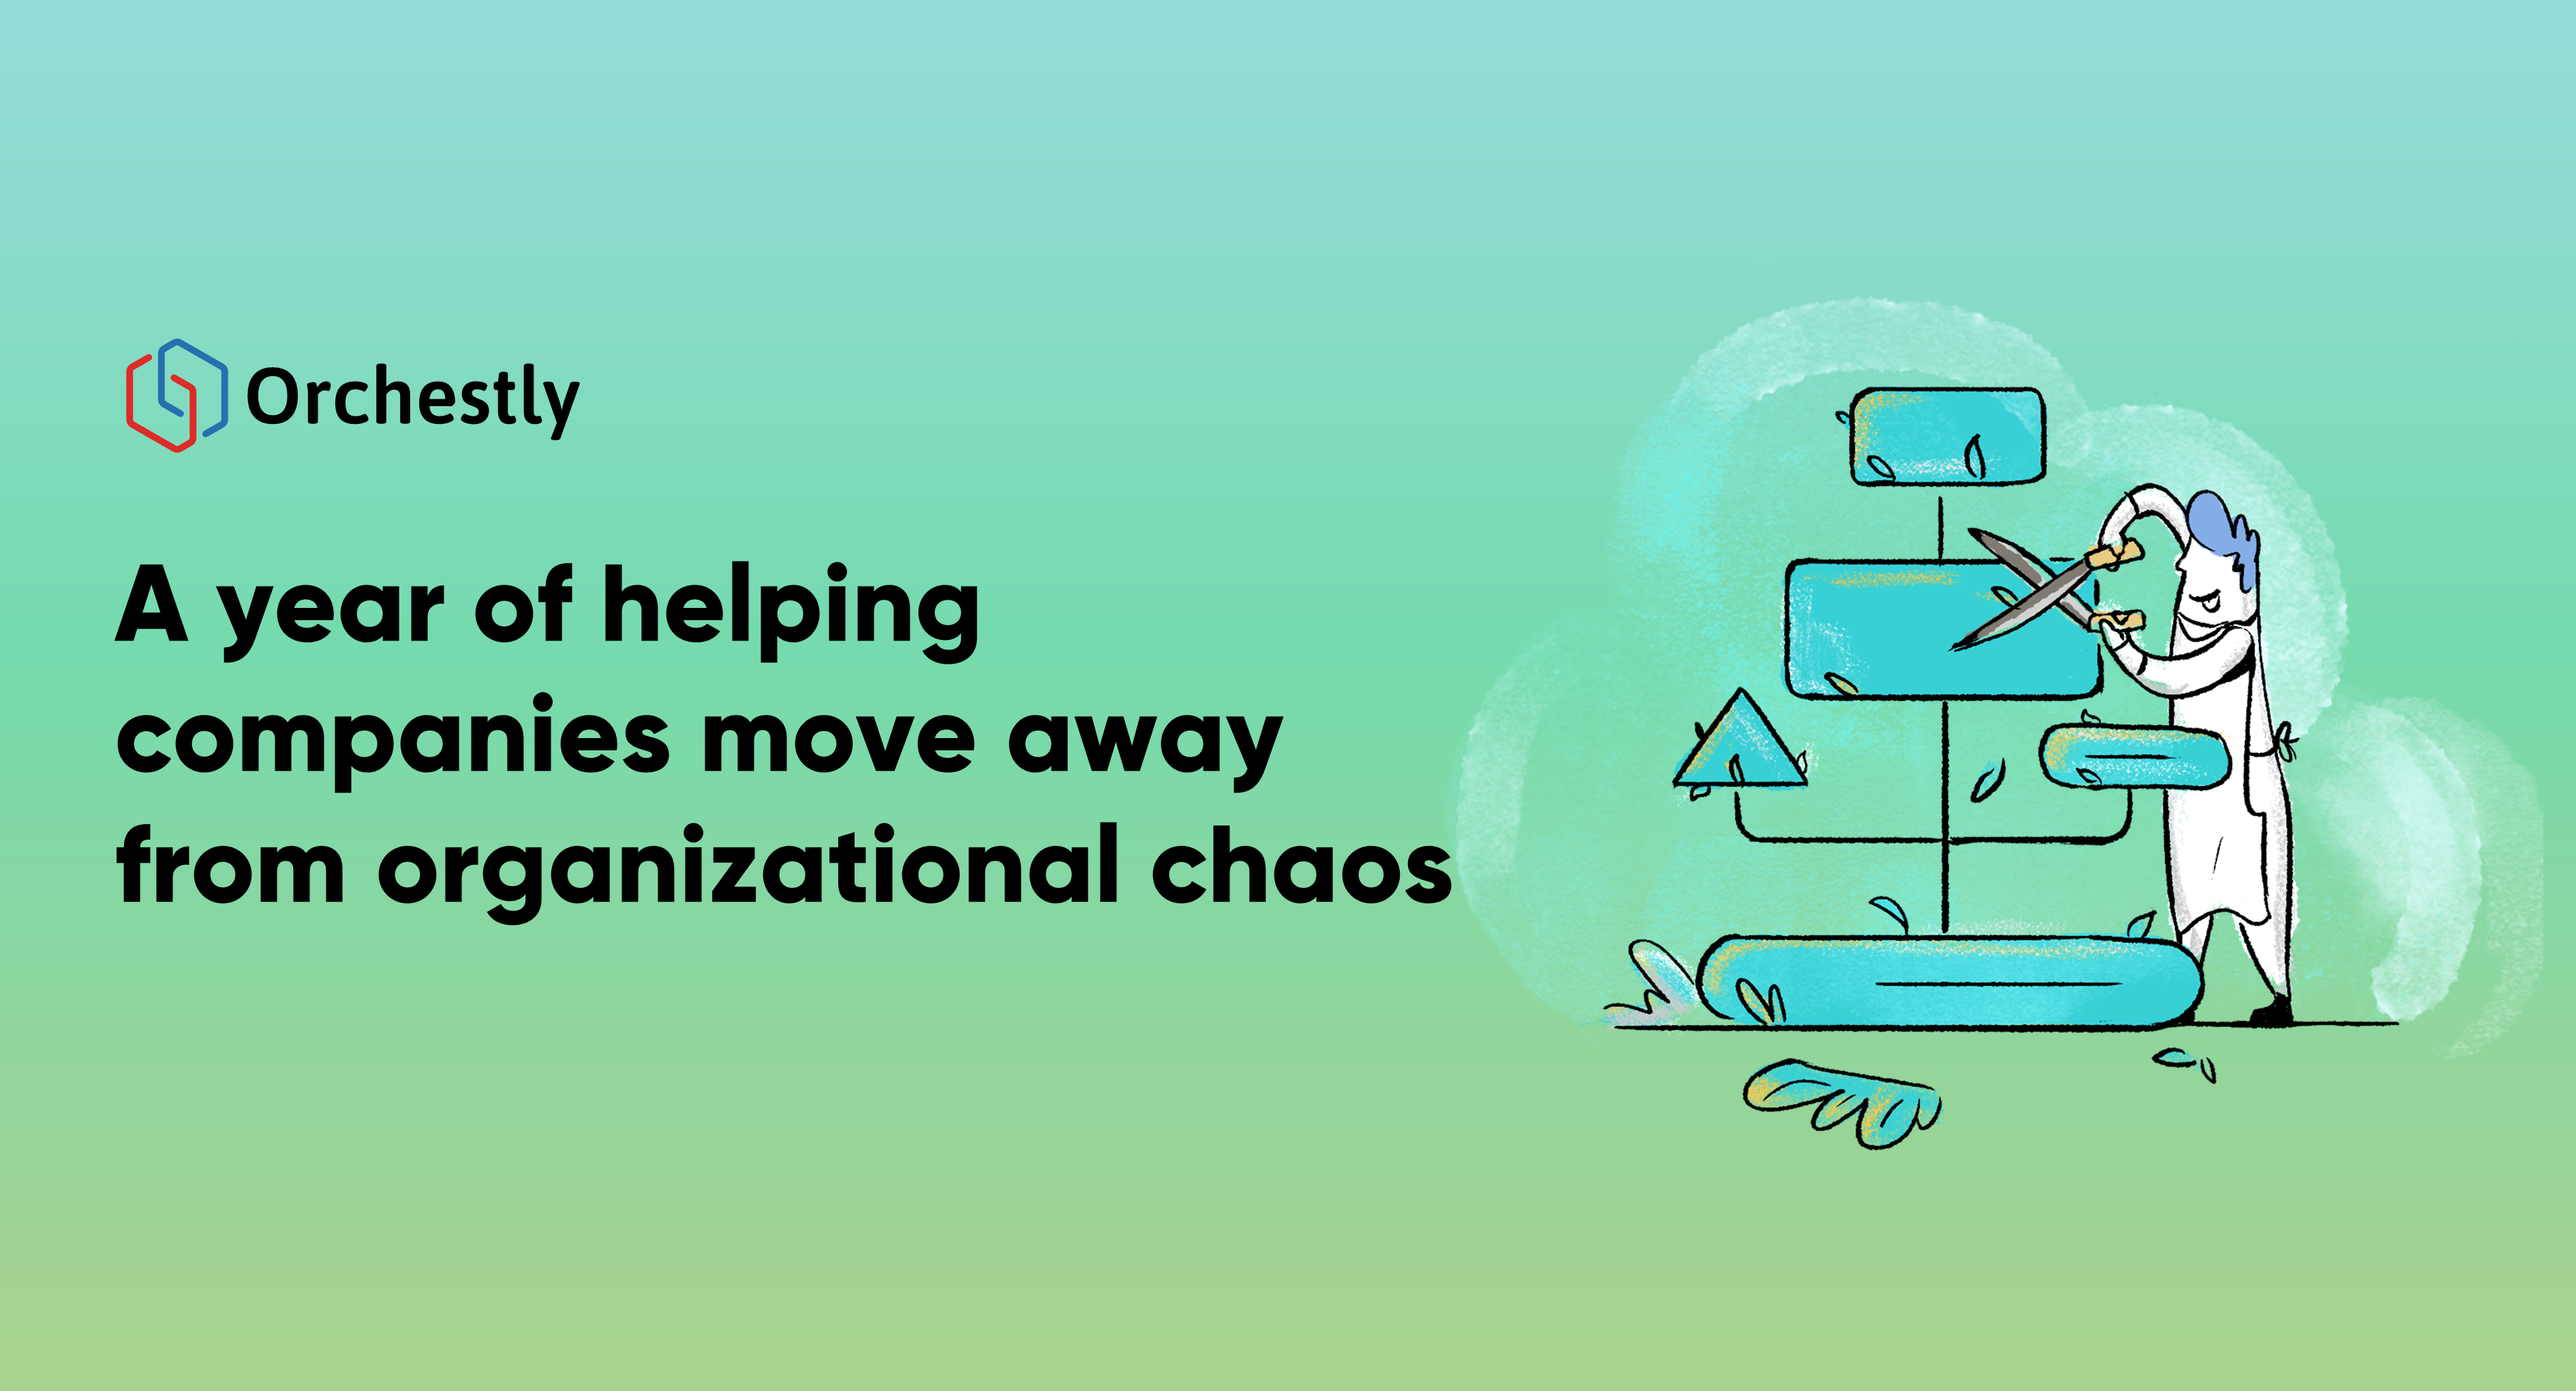 A year of helping companies move away from organizational chaos